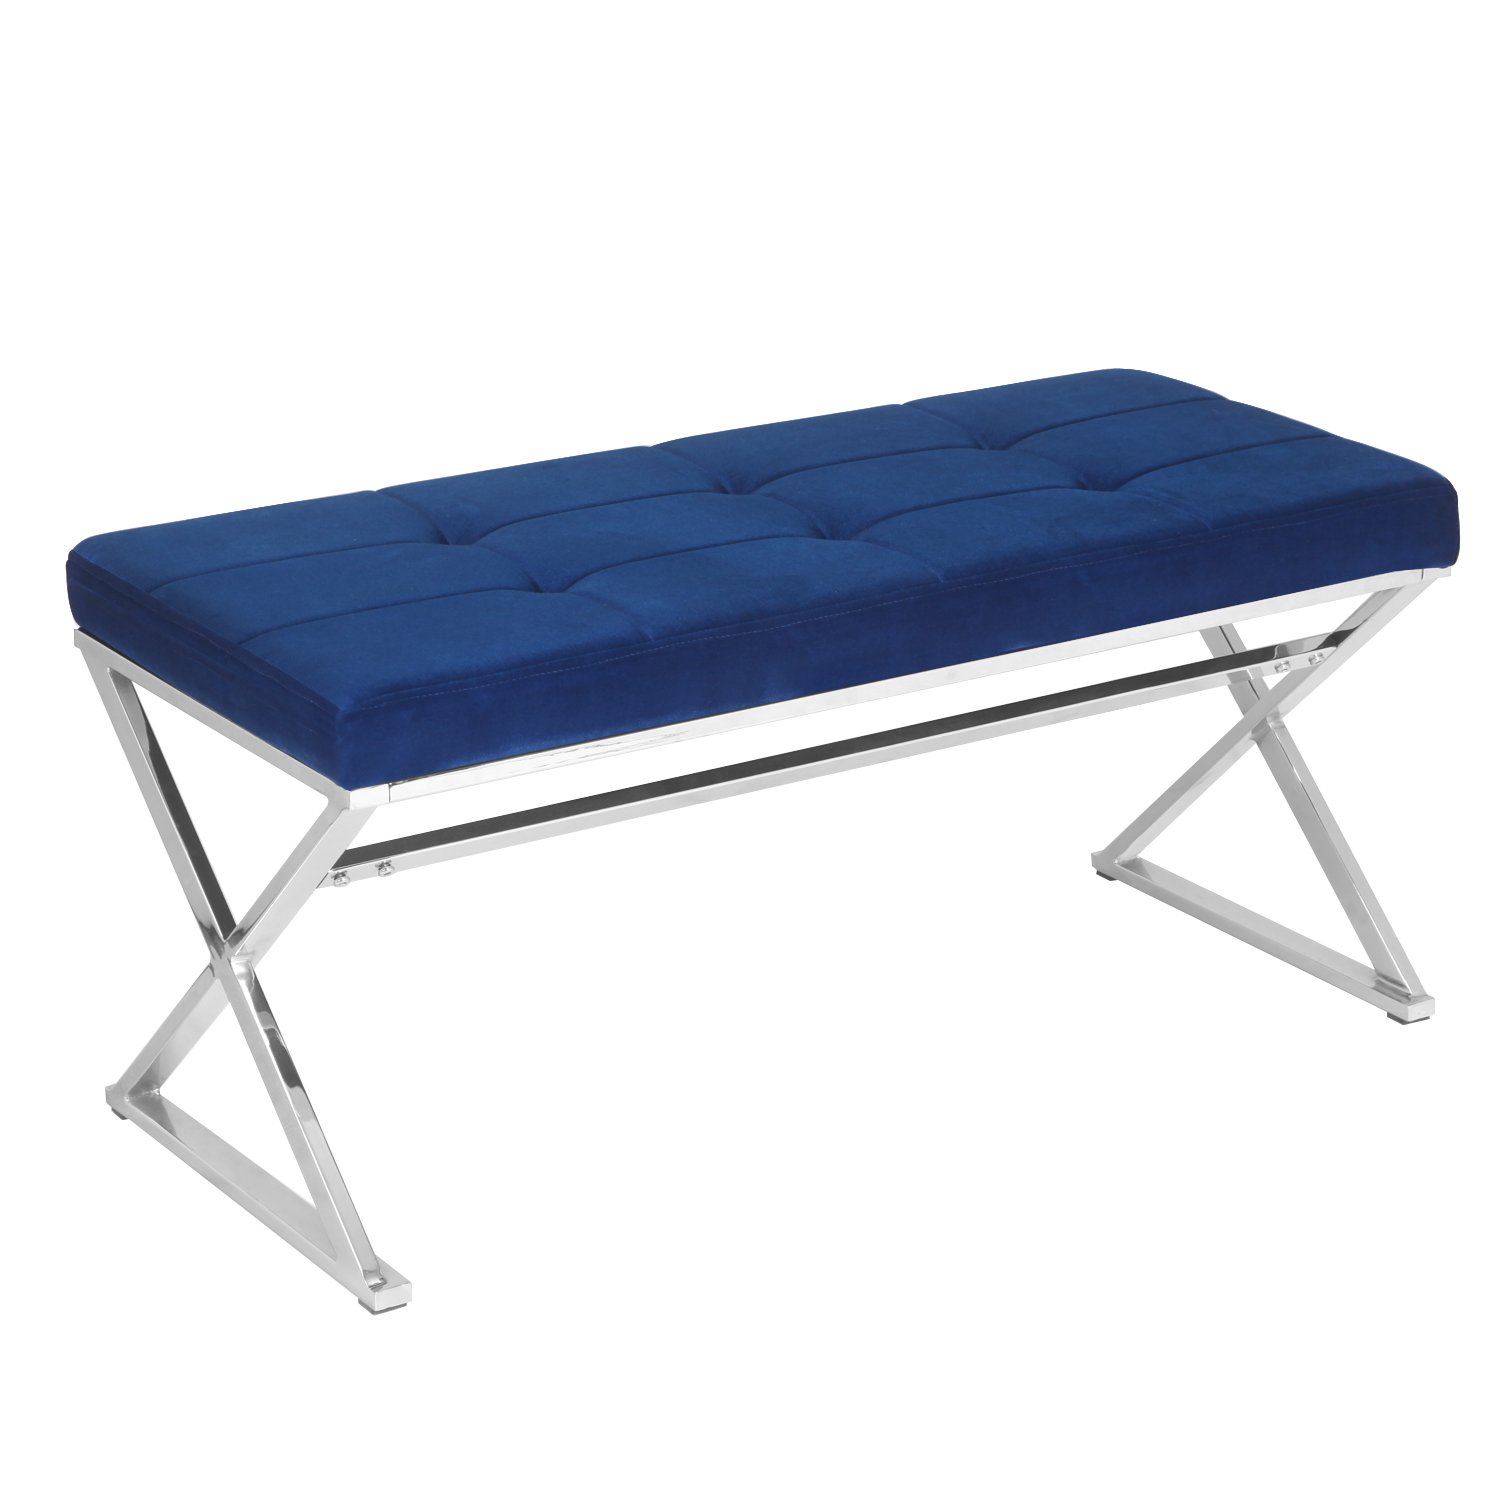 Adeco Metal Bench Entryway Footstool Seat Upholstered in Button, Tufted Linen Fabric - Blue